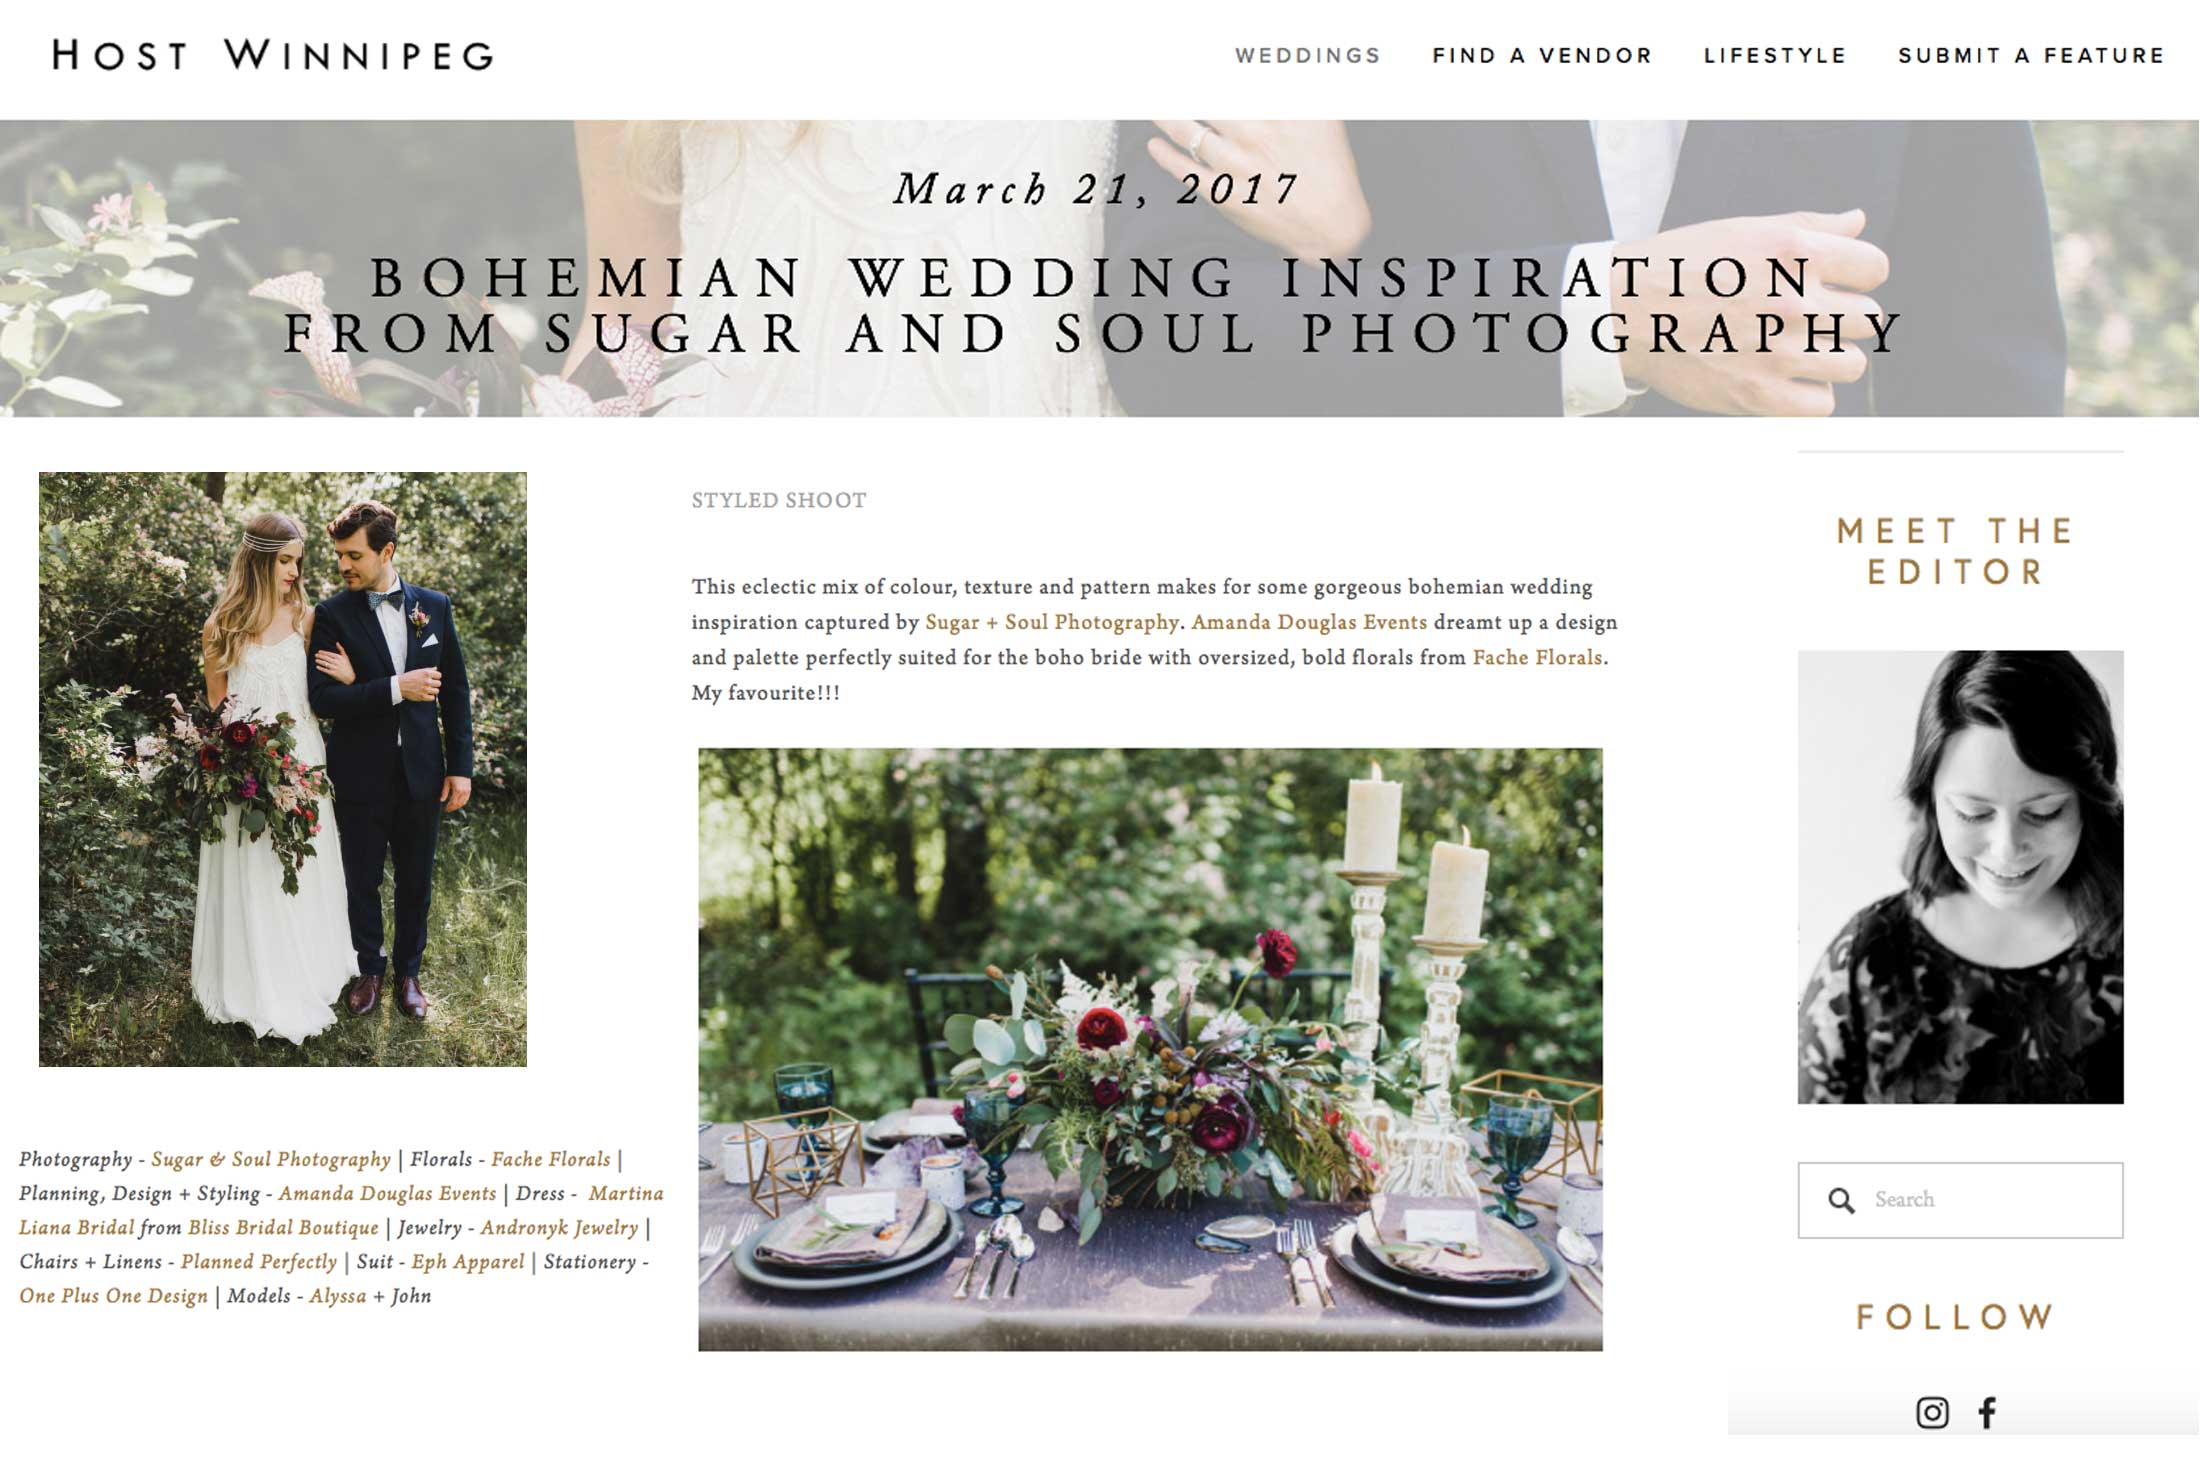 Winnipeg Wedding Planner and Inspiration Feature: Bohemian Rustic Glam Wedding